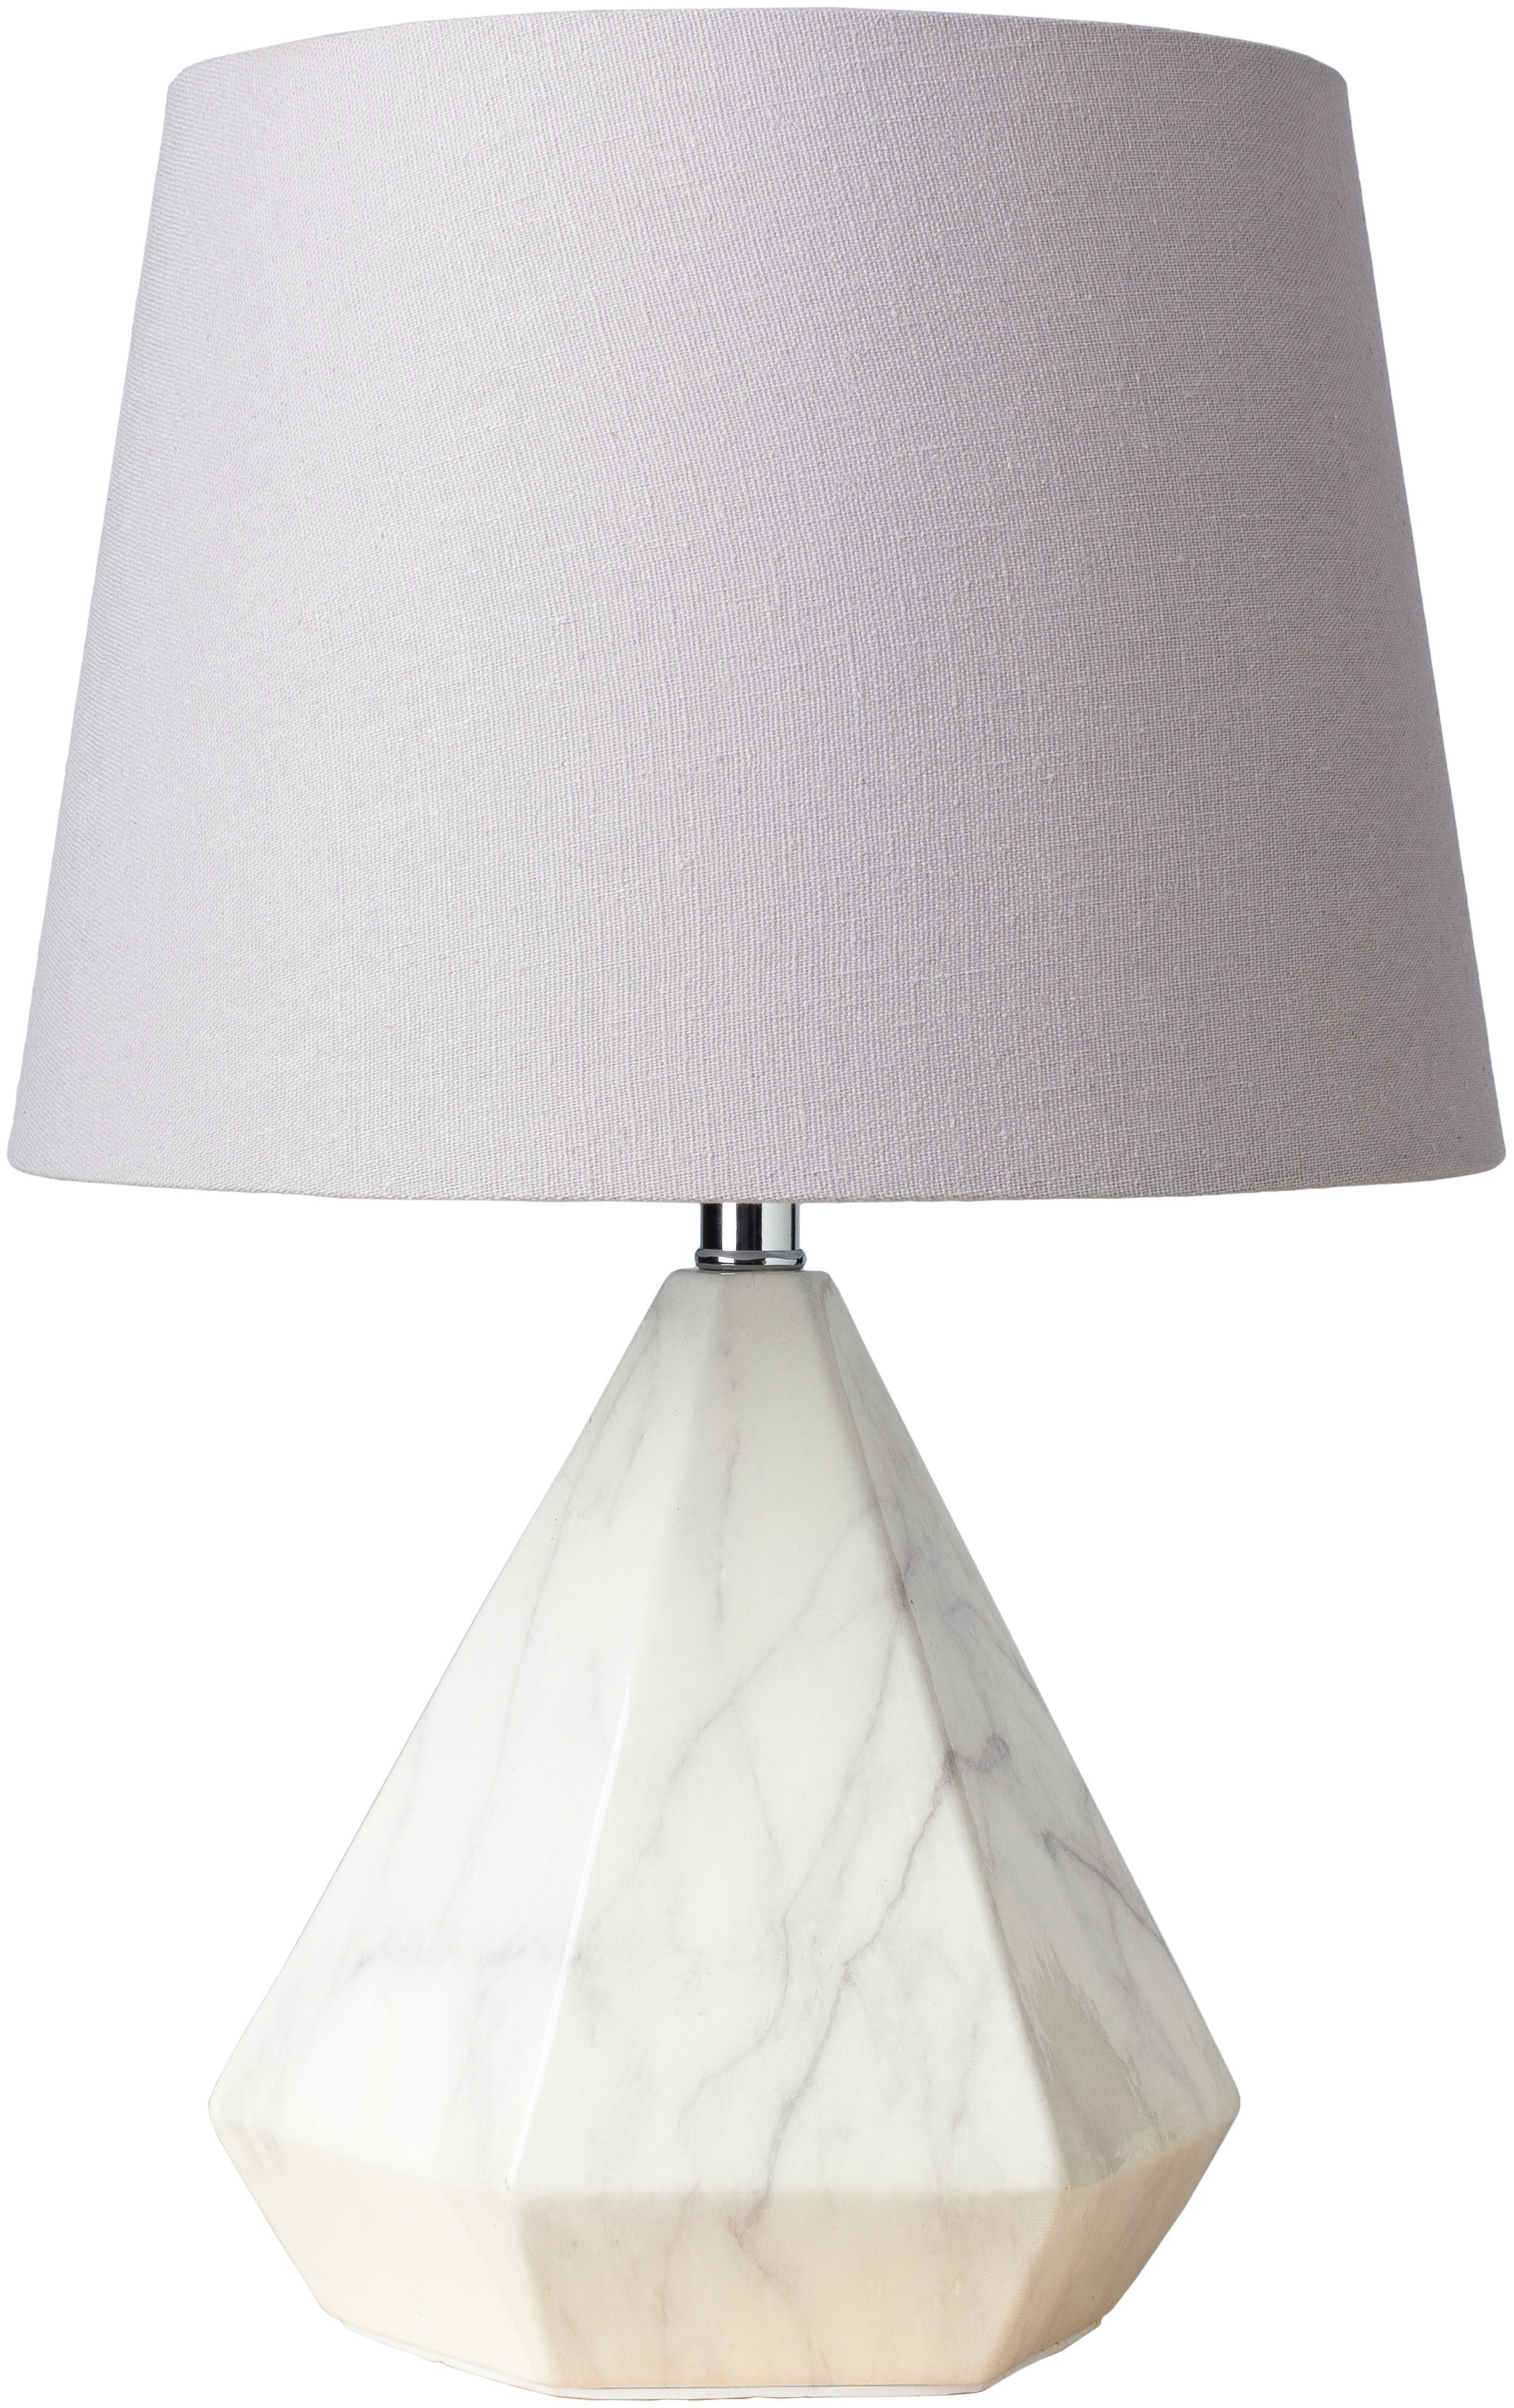 Surya L&s and Lighting Posh 11 x 11 x 17 Table L& POS-100 at Matter Brothers Furniture  sc 1 st  Matter Brothers Furniture & Surya Lamps and Lighting Posh 11 x 11 x 17 Table Lamp POS-100 ...